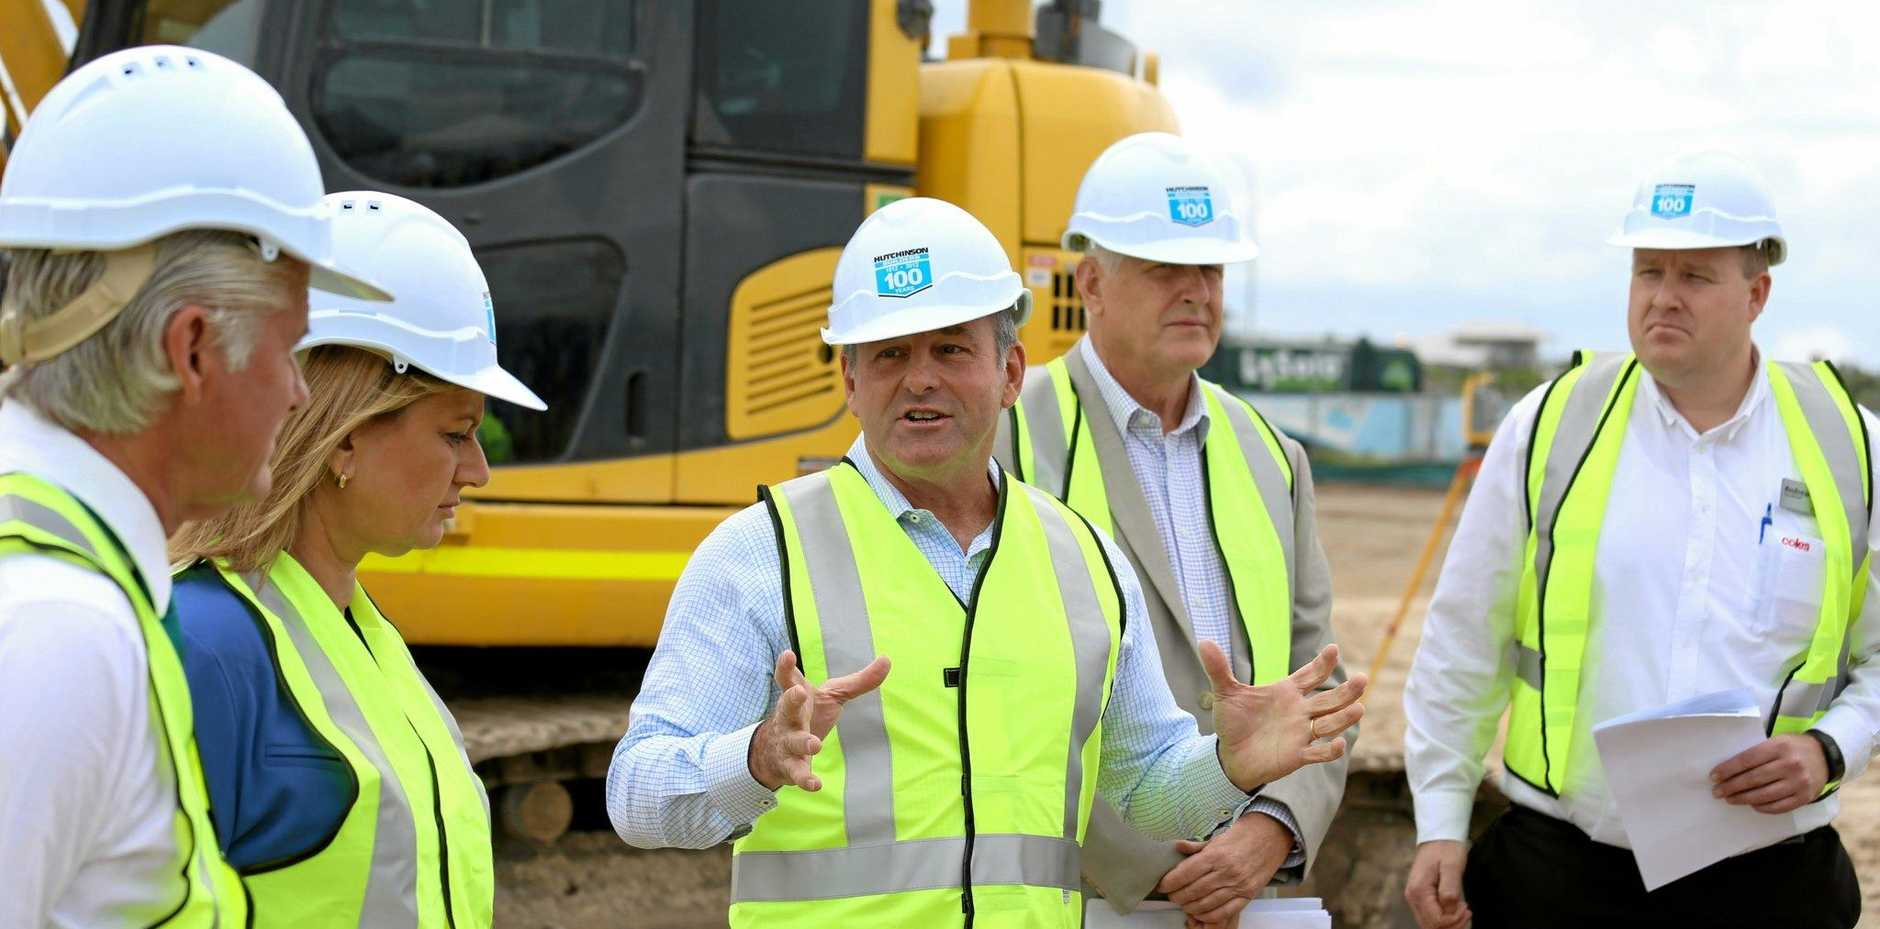 Don O'Rorke of Consolidated Properties, the company building Coles Casuarina, at the development launch last year.